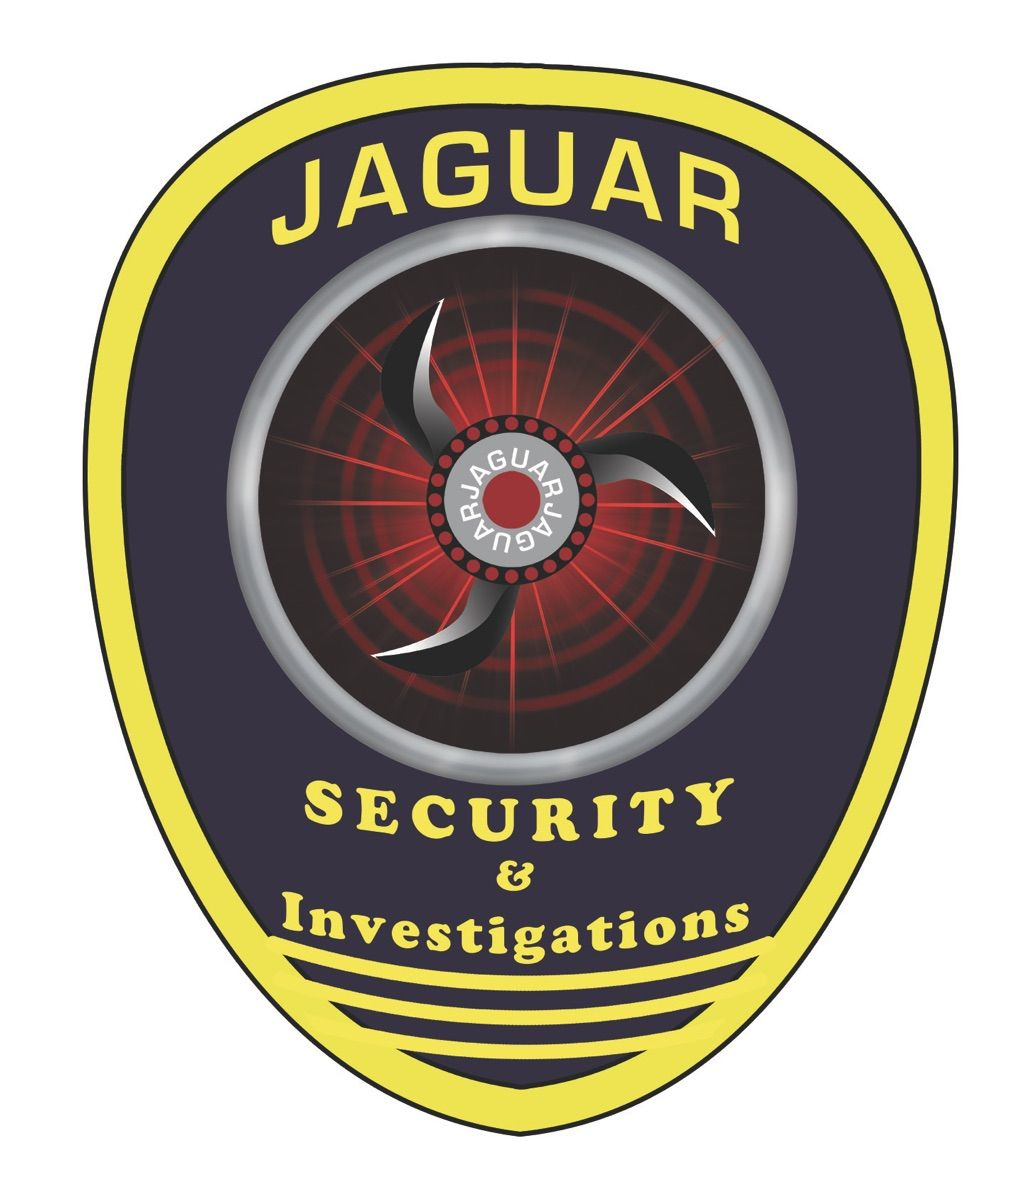 Jaguar Security and Investigations